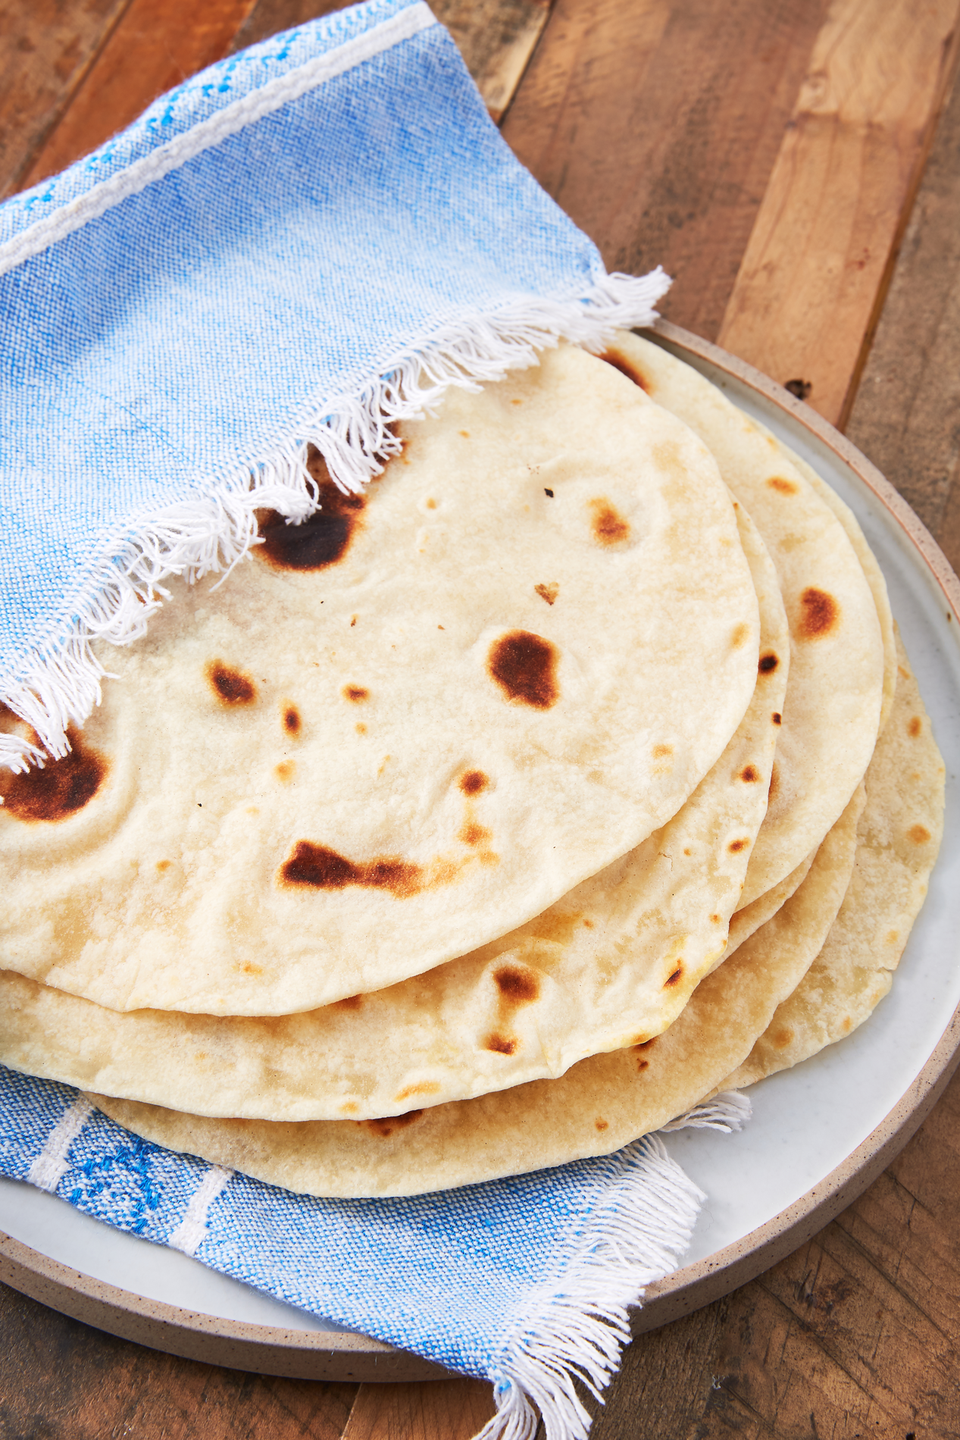 """<p>The glue that holds your whole meal together.</p><p>Get the recipe from <a href=""""https://www.delish.com/cooking/recipe-ideas/a27133027/homemade-flour-tortillas-recipe/"""" rel=""""nofollow noopener"""" target=""""_blank"""" data-ylk=""""slk:Delish"""" class=""""link rapid-noclick-resp"""">Delish</a>. </p>"""